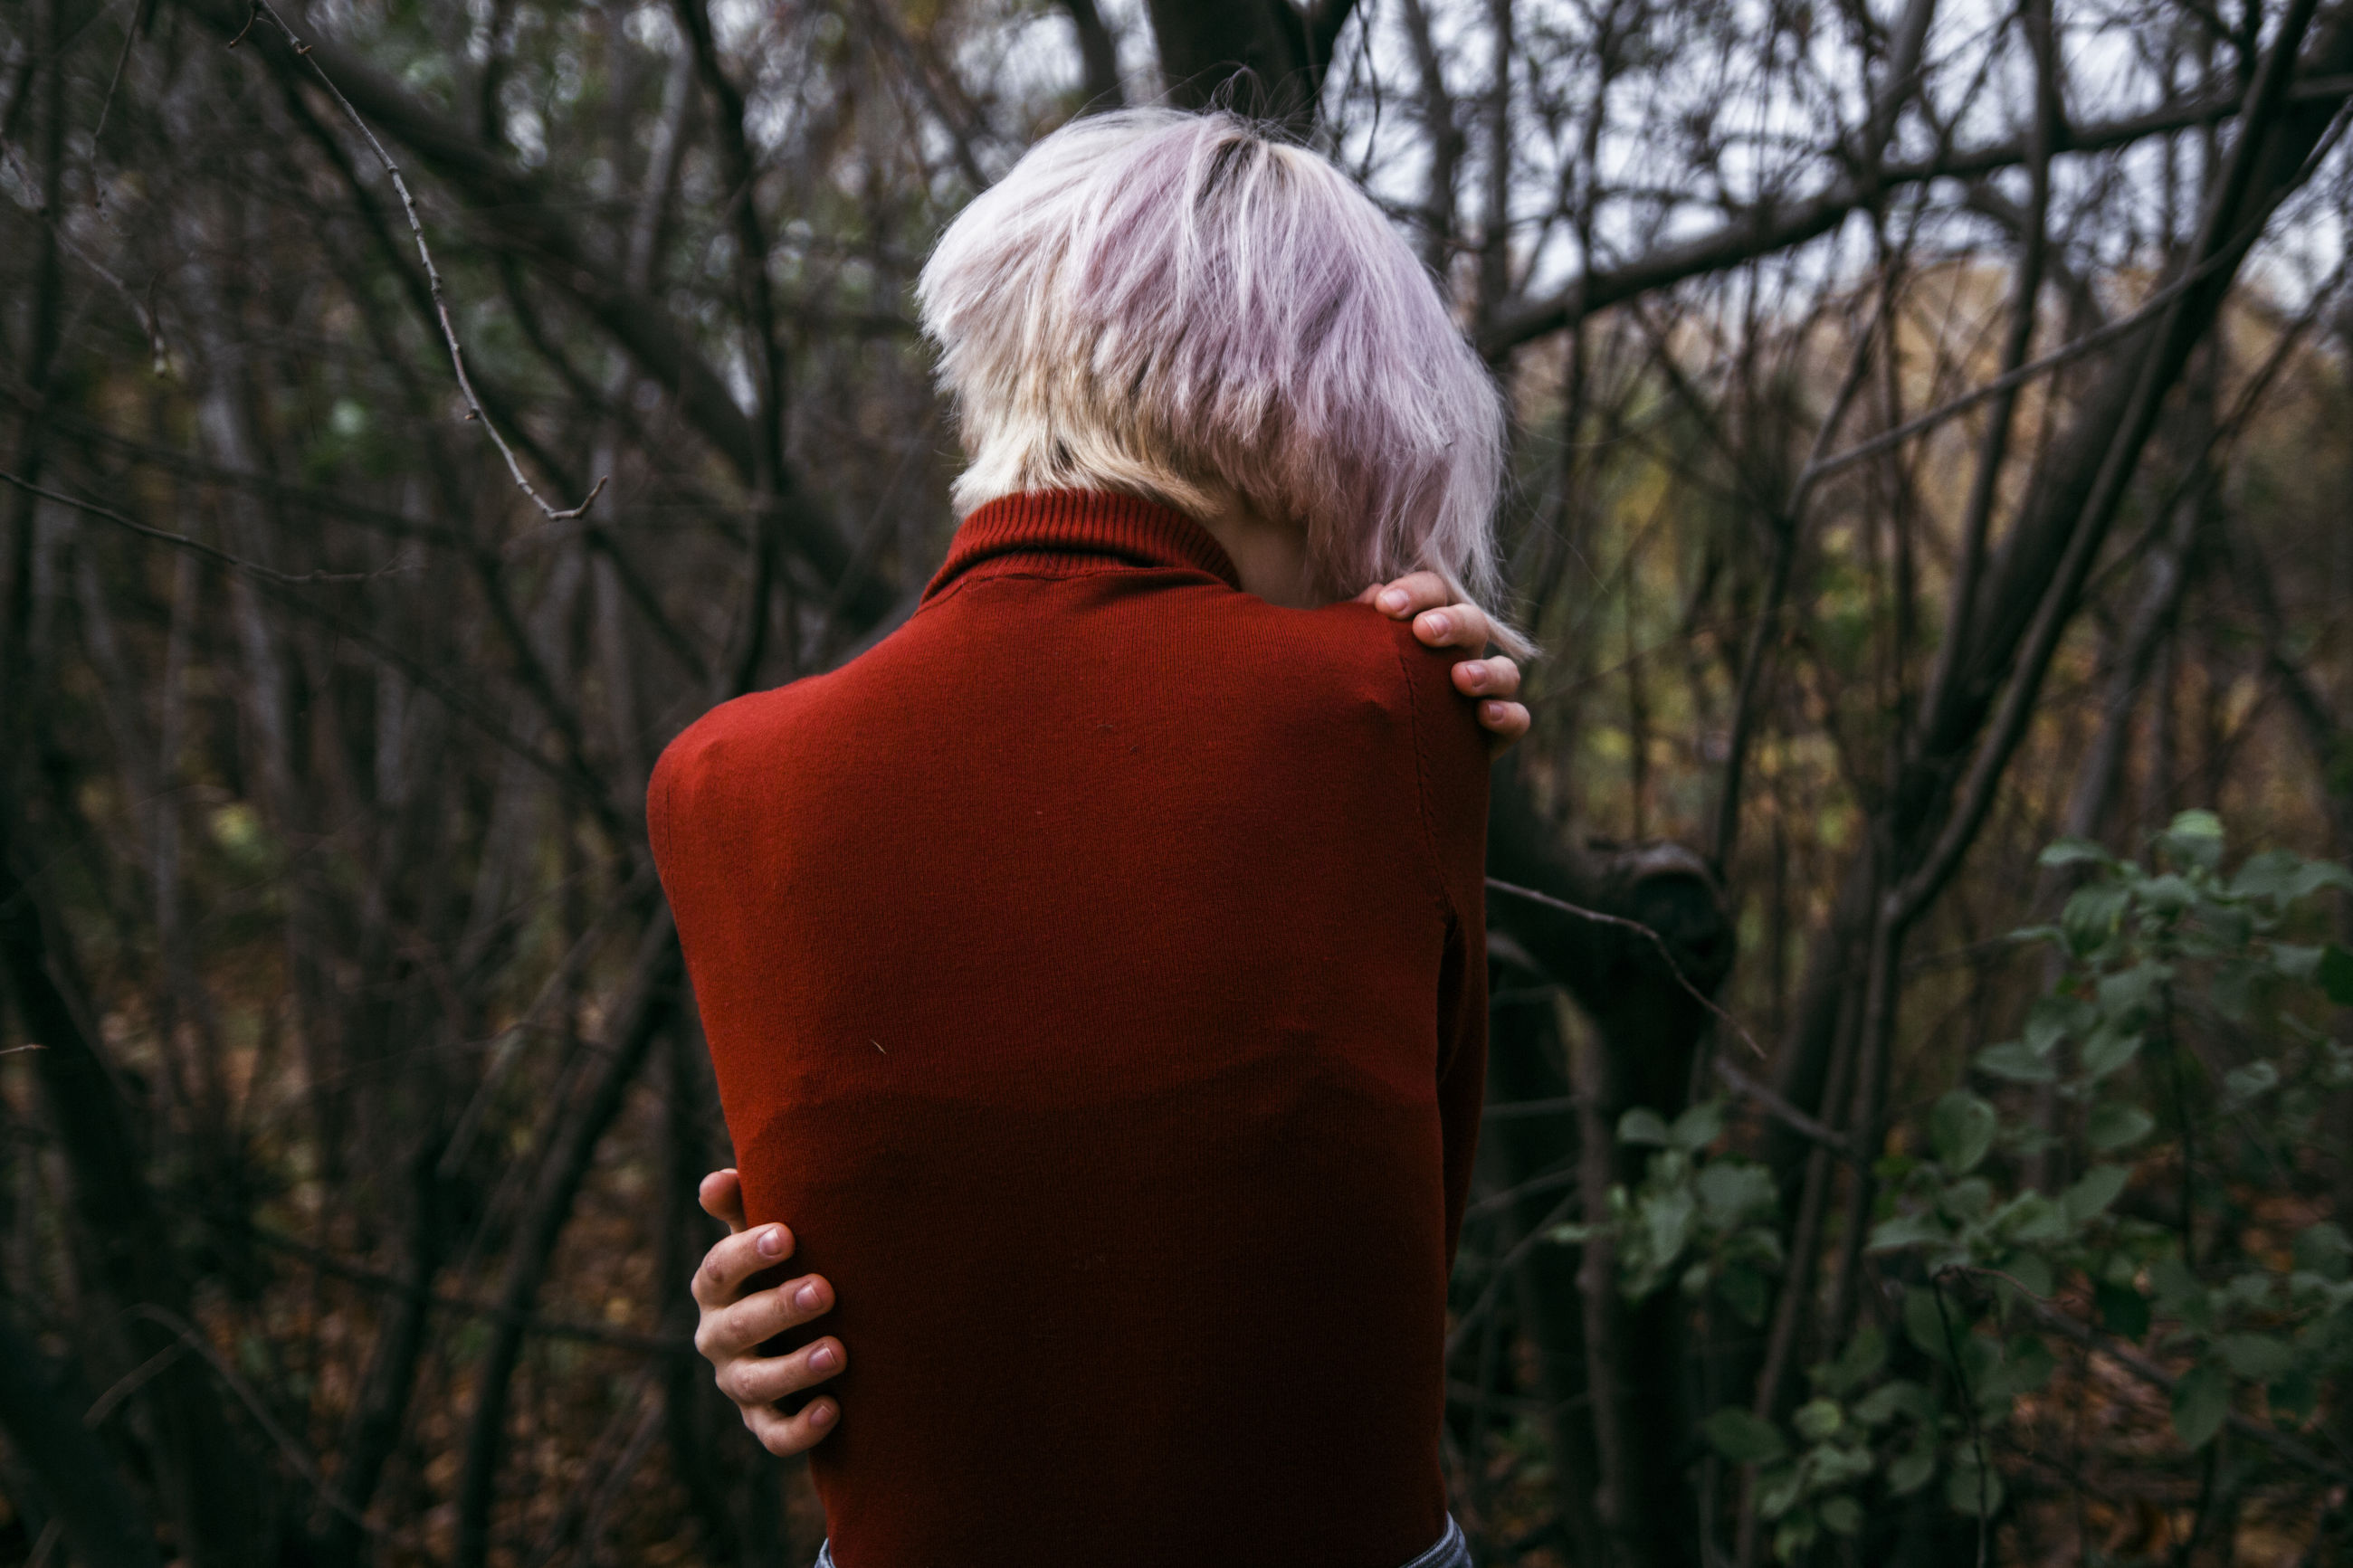 rear view, real people, one person, tree, leisure activity, childhood, lifestyles, outdoors, day, bare tree, standing, nature, forest, boys, blond hair, beauty in nature, people